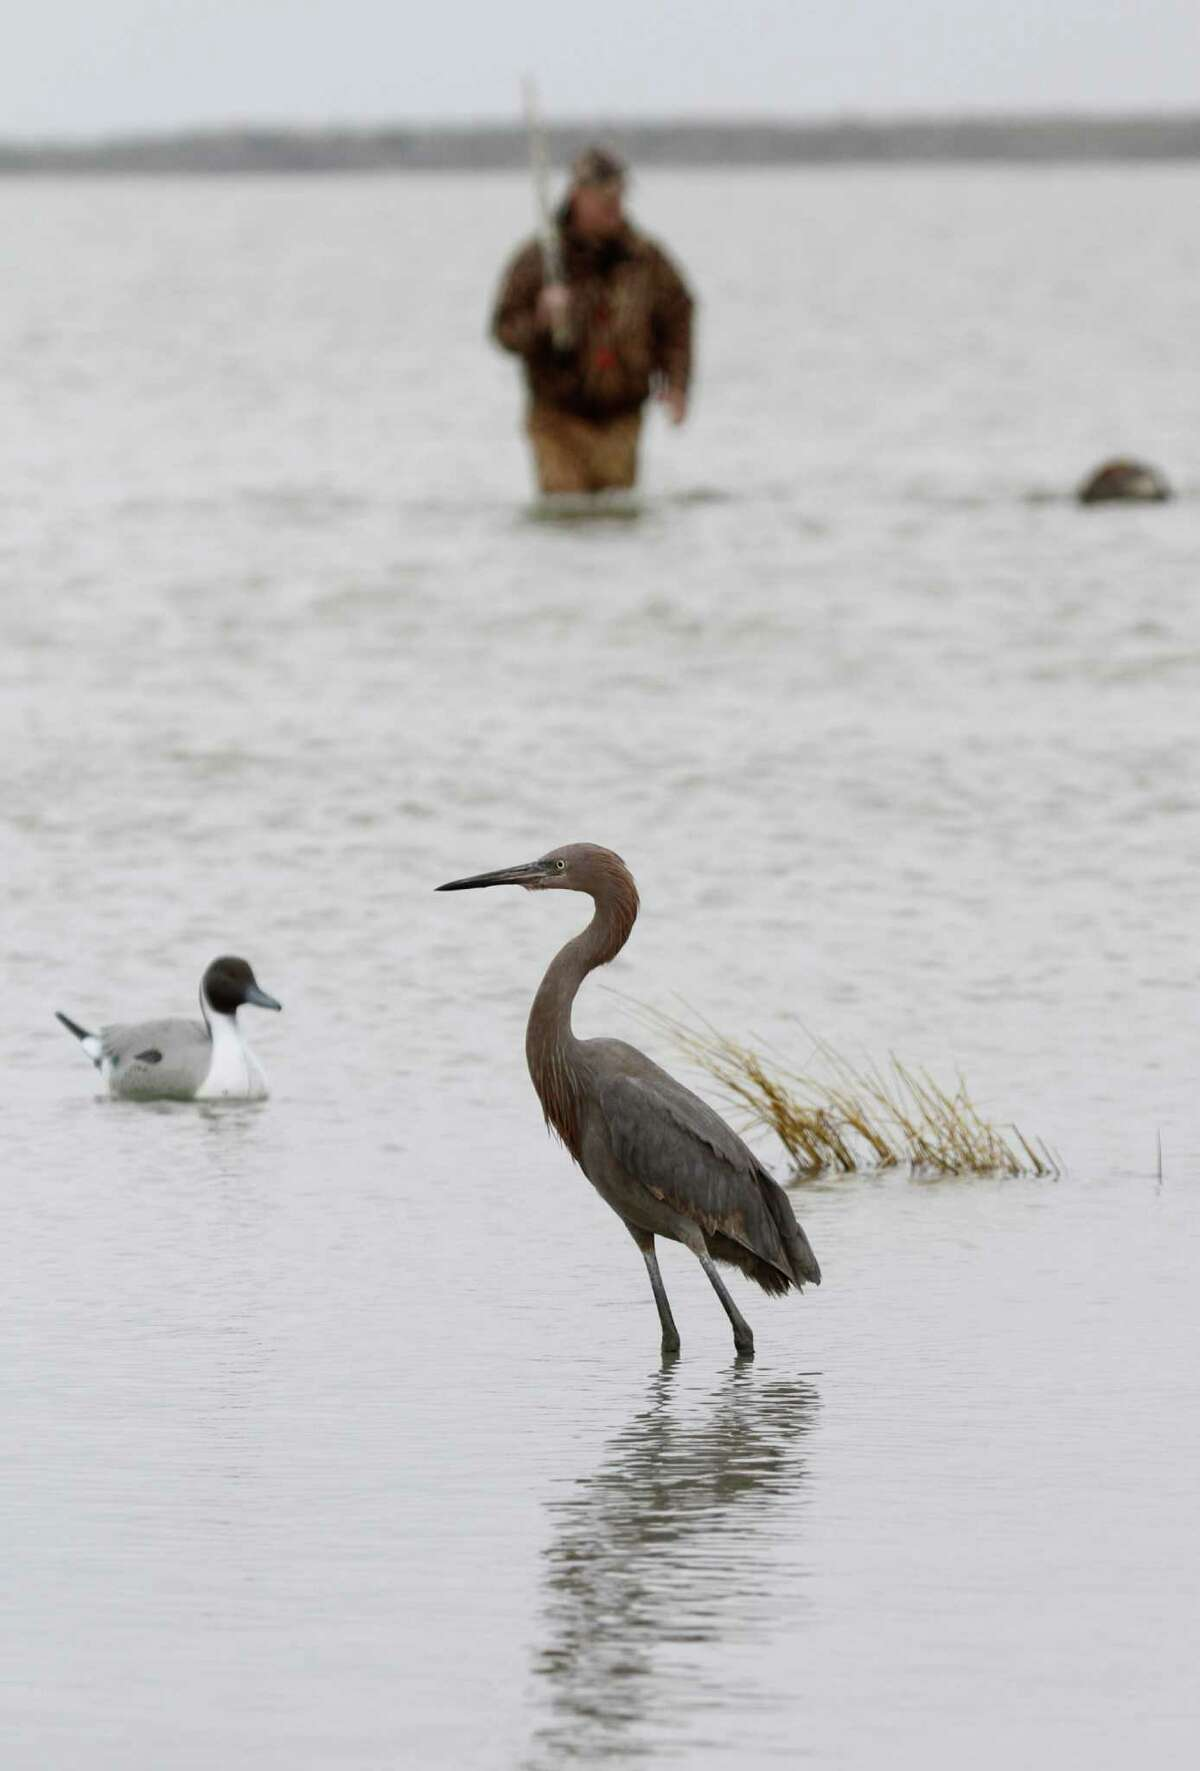 Texas waterfowlers are blessed with opportunities to witness the intriguing lives of a variety of wildlife, such as reddish egrets that have a unique method of fishing.